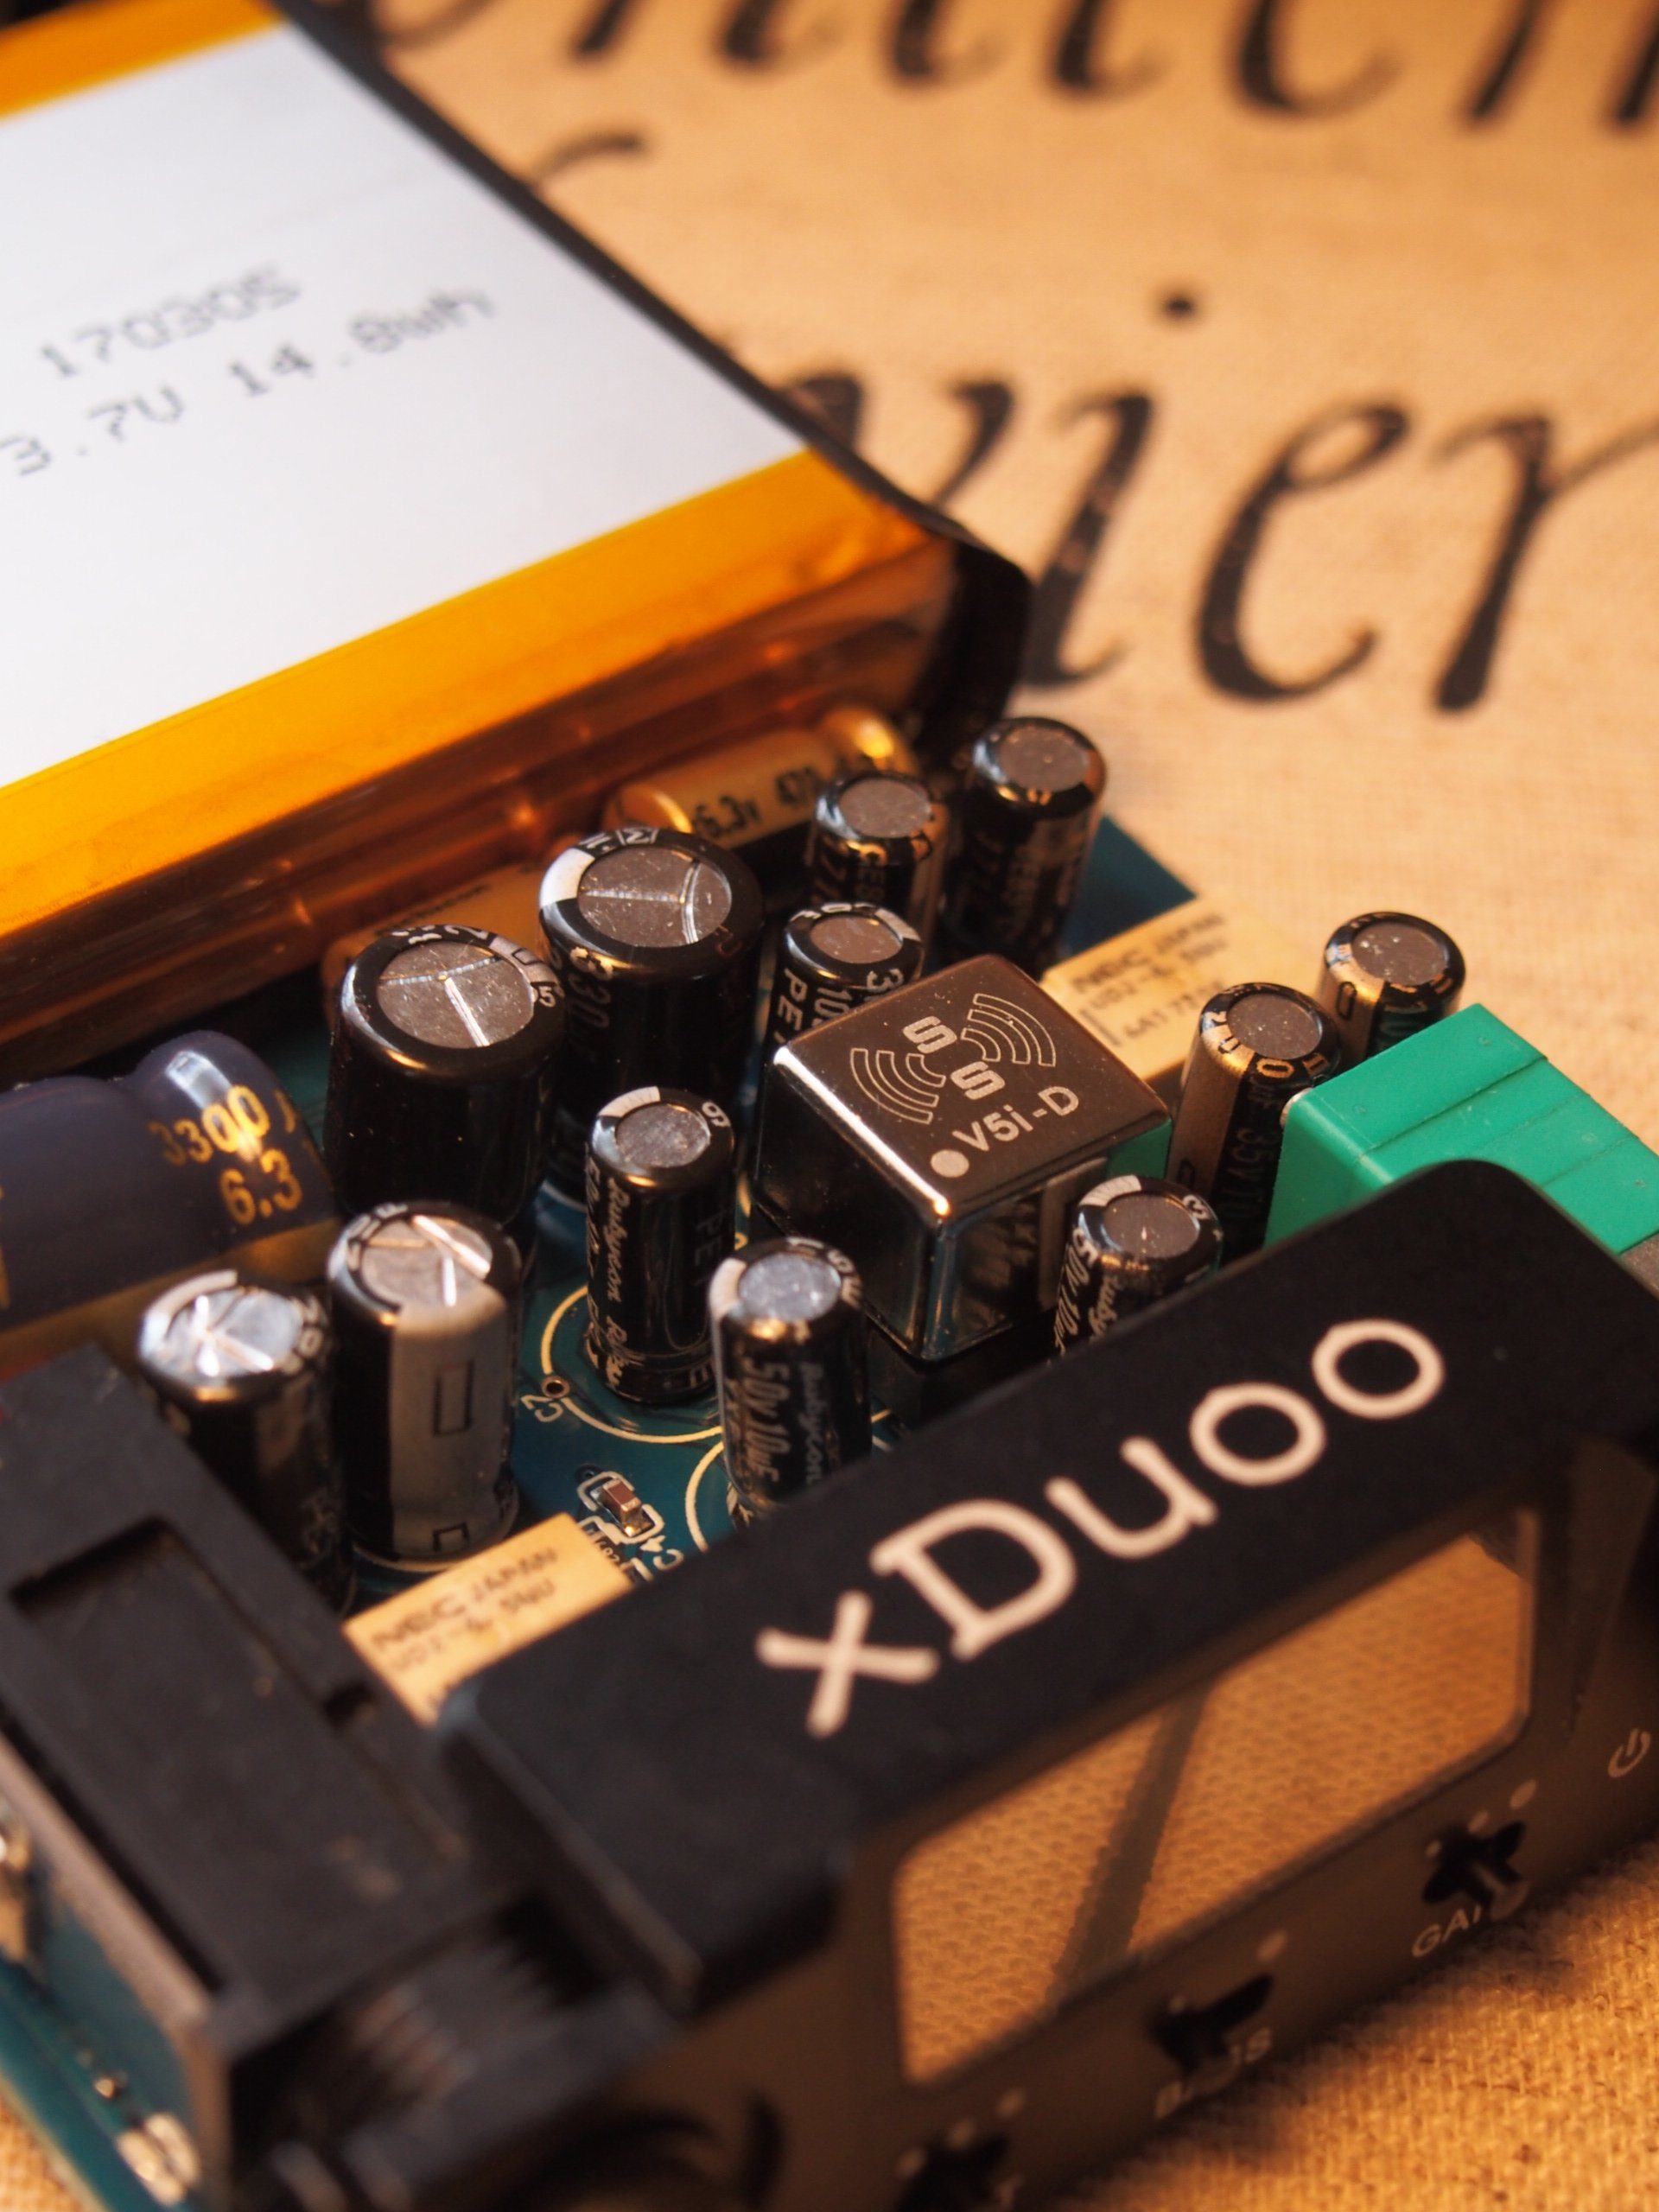 Burson Audio Supreme Sound Opamp V5i Reviews Page 3 Headphone Op Amp How To Disable A Single In Dual Packaging Stock Opa 1612 Of Xduoo Isnt Bad At All And Here The Improvment With Is Perhaps More Subtle Than Walnut But Still Very Hearable